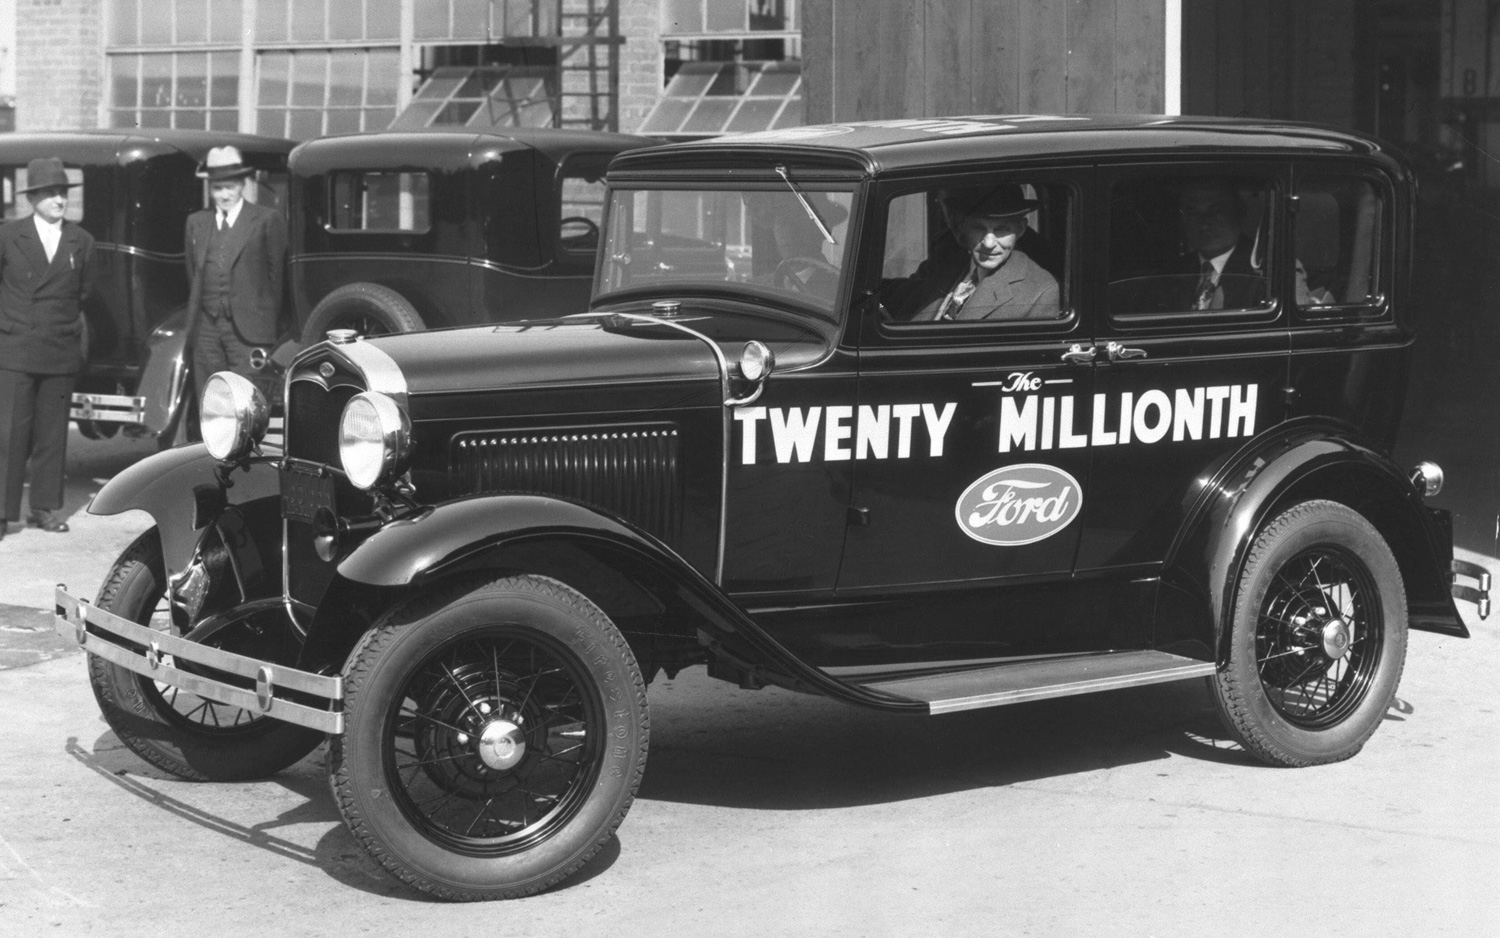 See The Twentieth Million Ford touring Tennessee in 1931